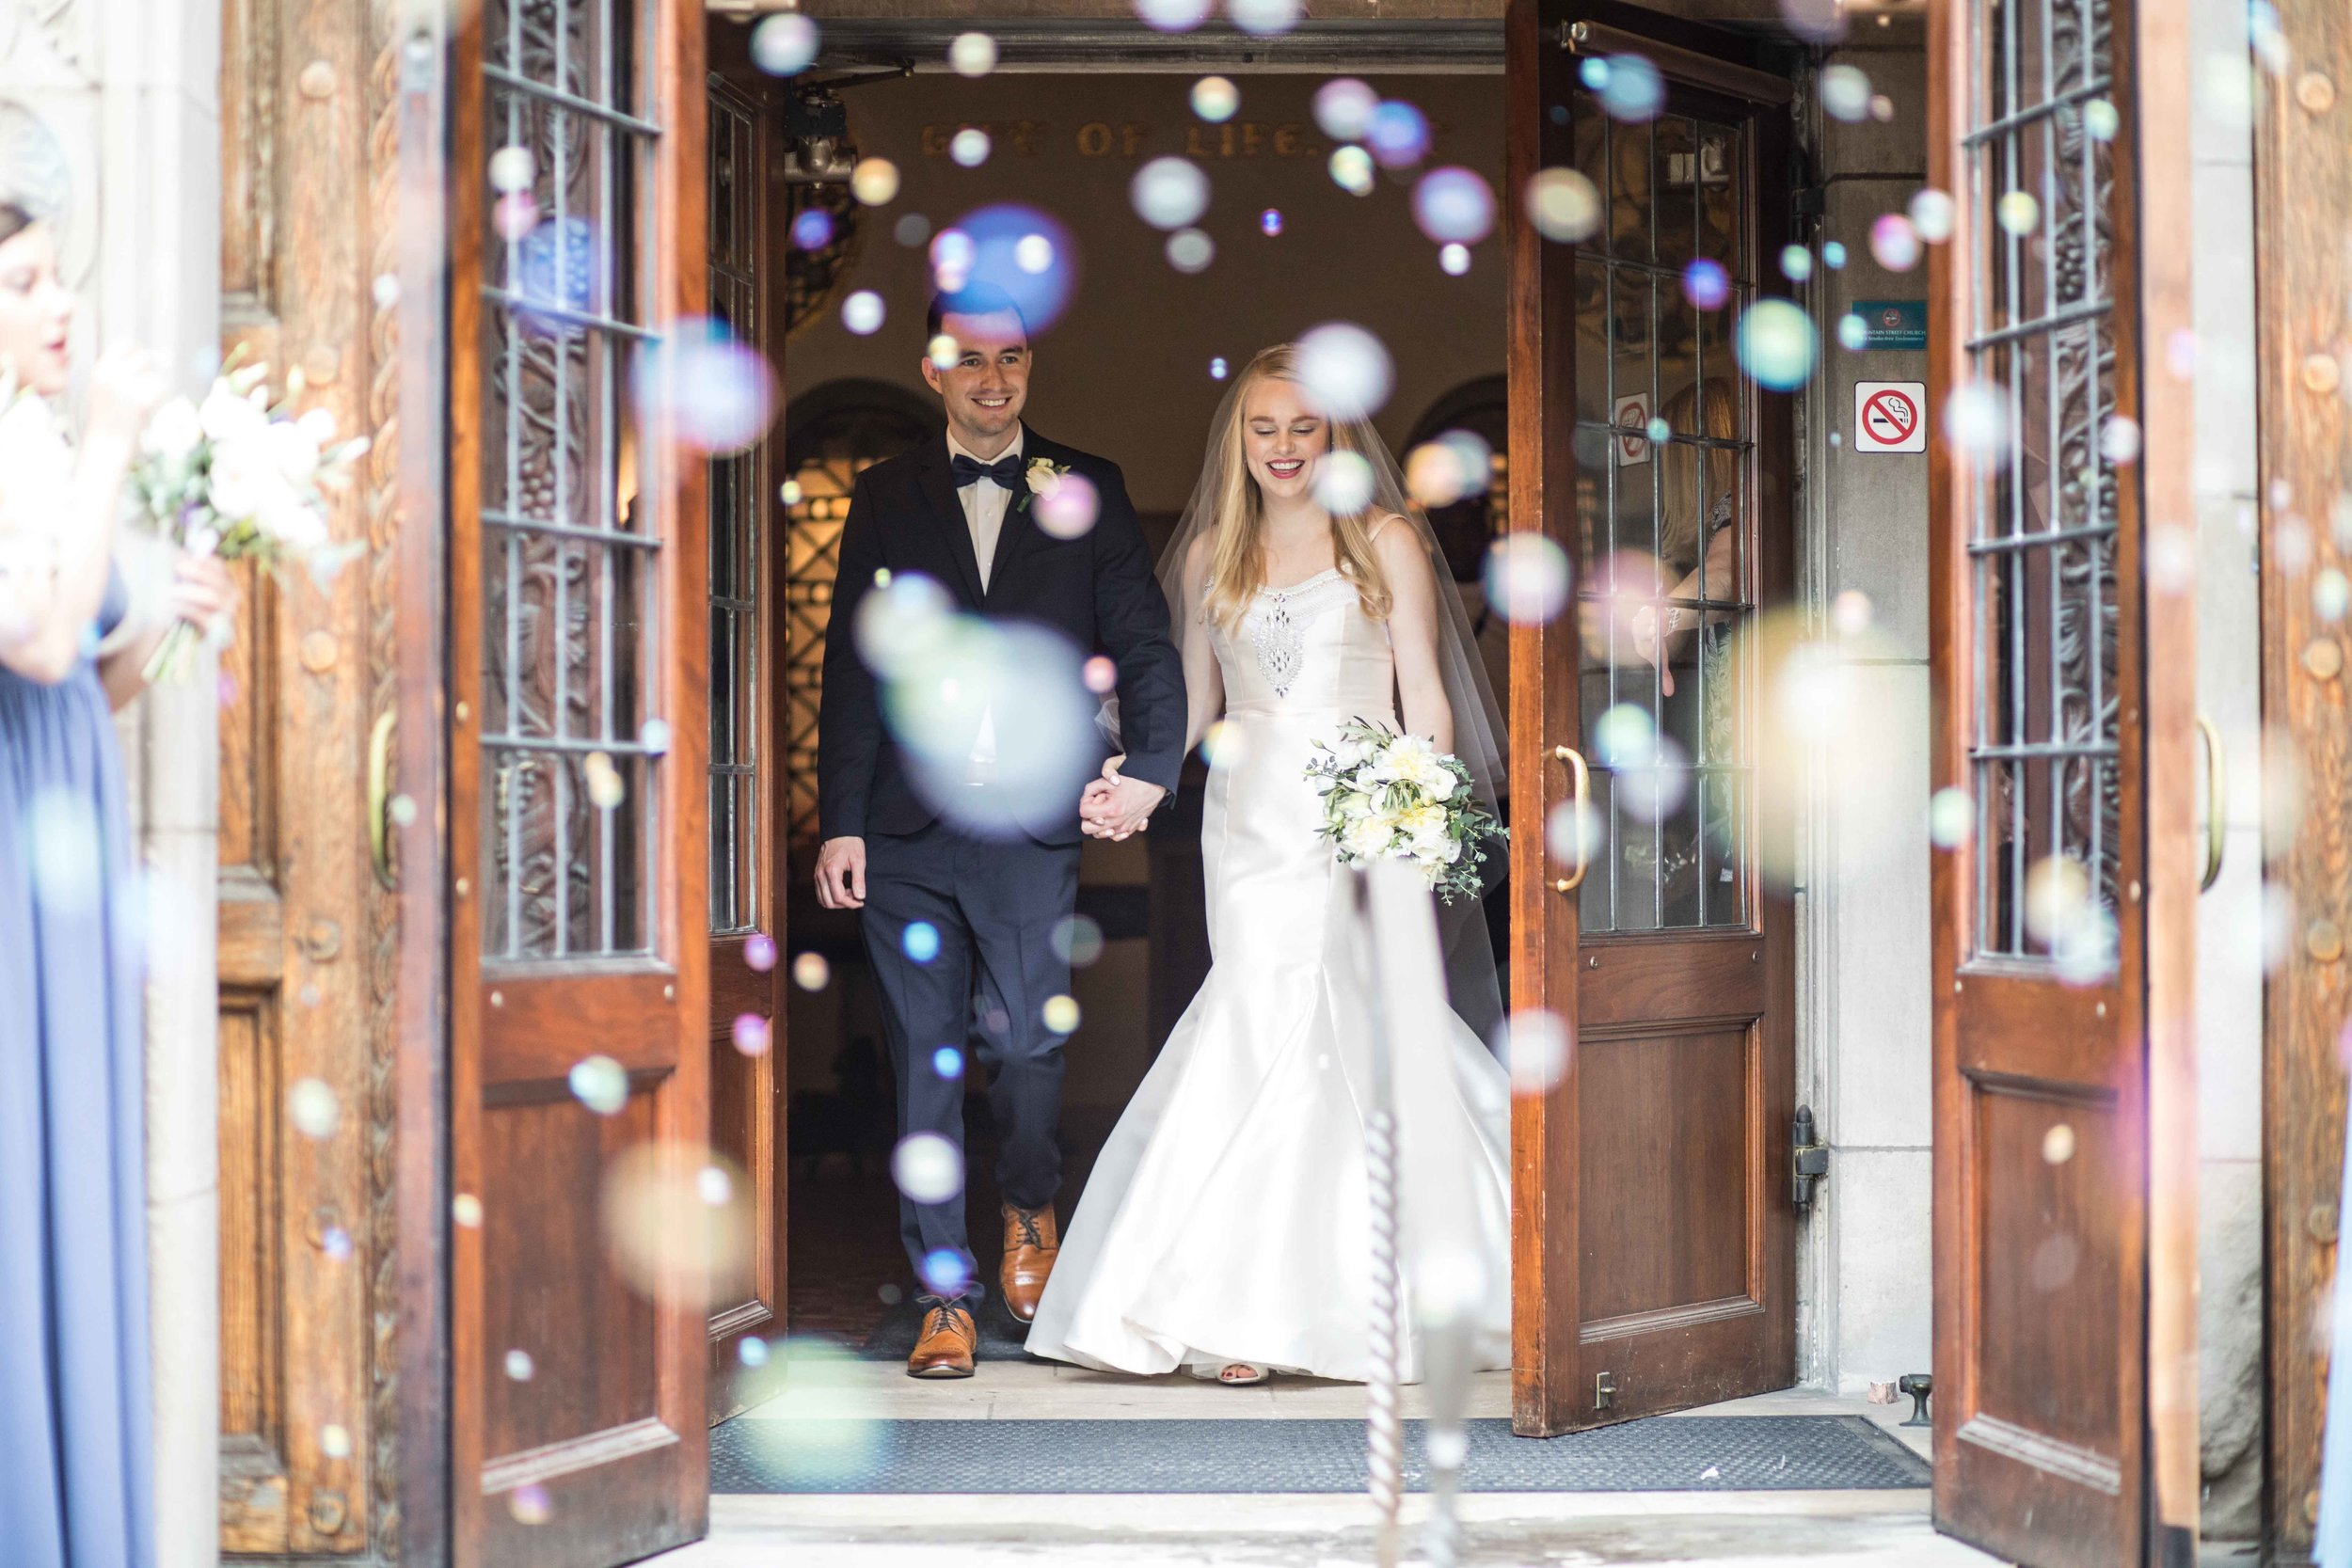 Bride and Groom in a cloud of bubbles